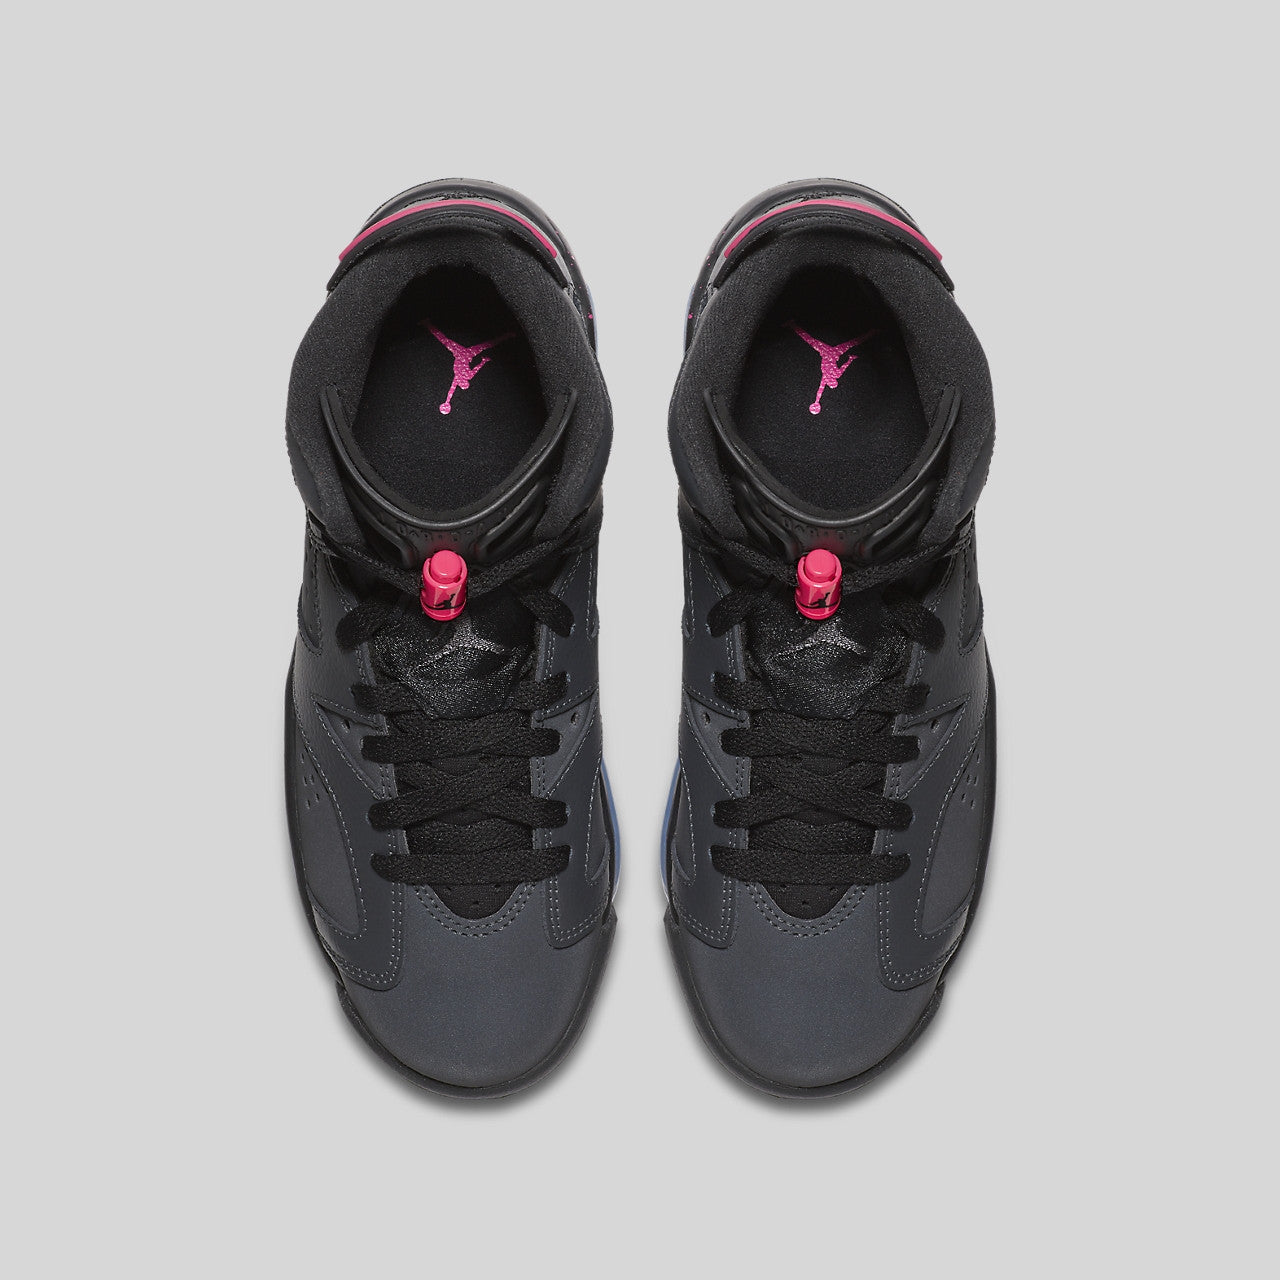 pretty nice ba0ff 14e41 Nike Air Jordan 6 Retro GG (GS) Anthracite Black Hyper Pink